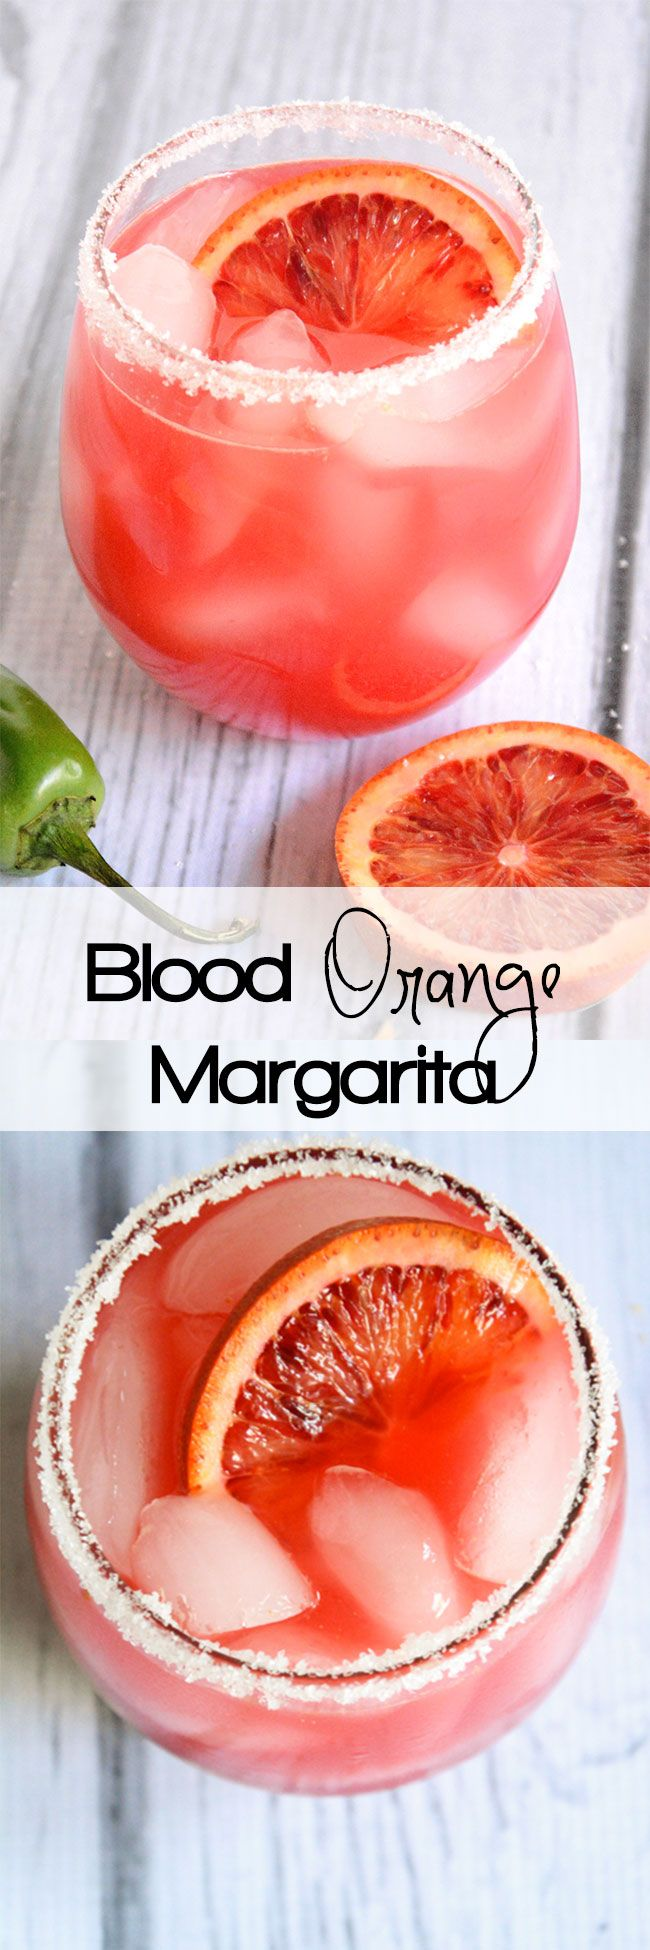 This Blood Orange Margarita is a refreshing twist on a classic margarita with fresh blood orange juice, triple sec and fresh squeezed lime juice! #margarita